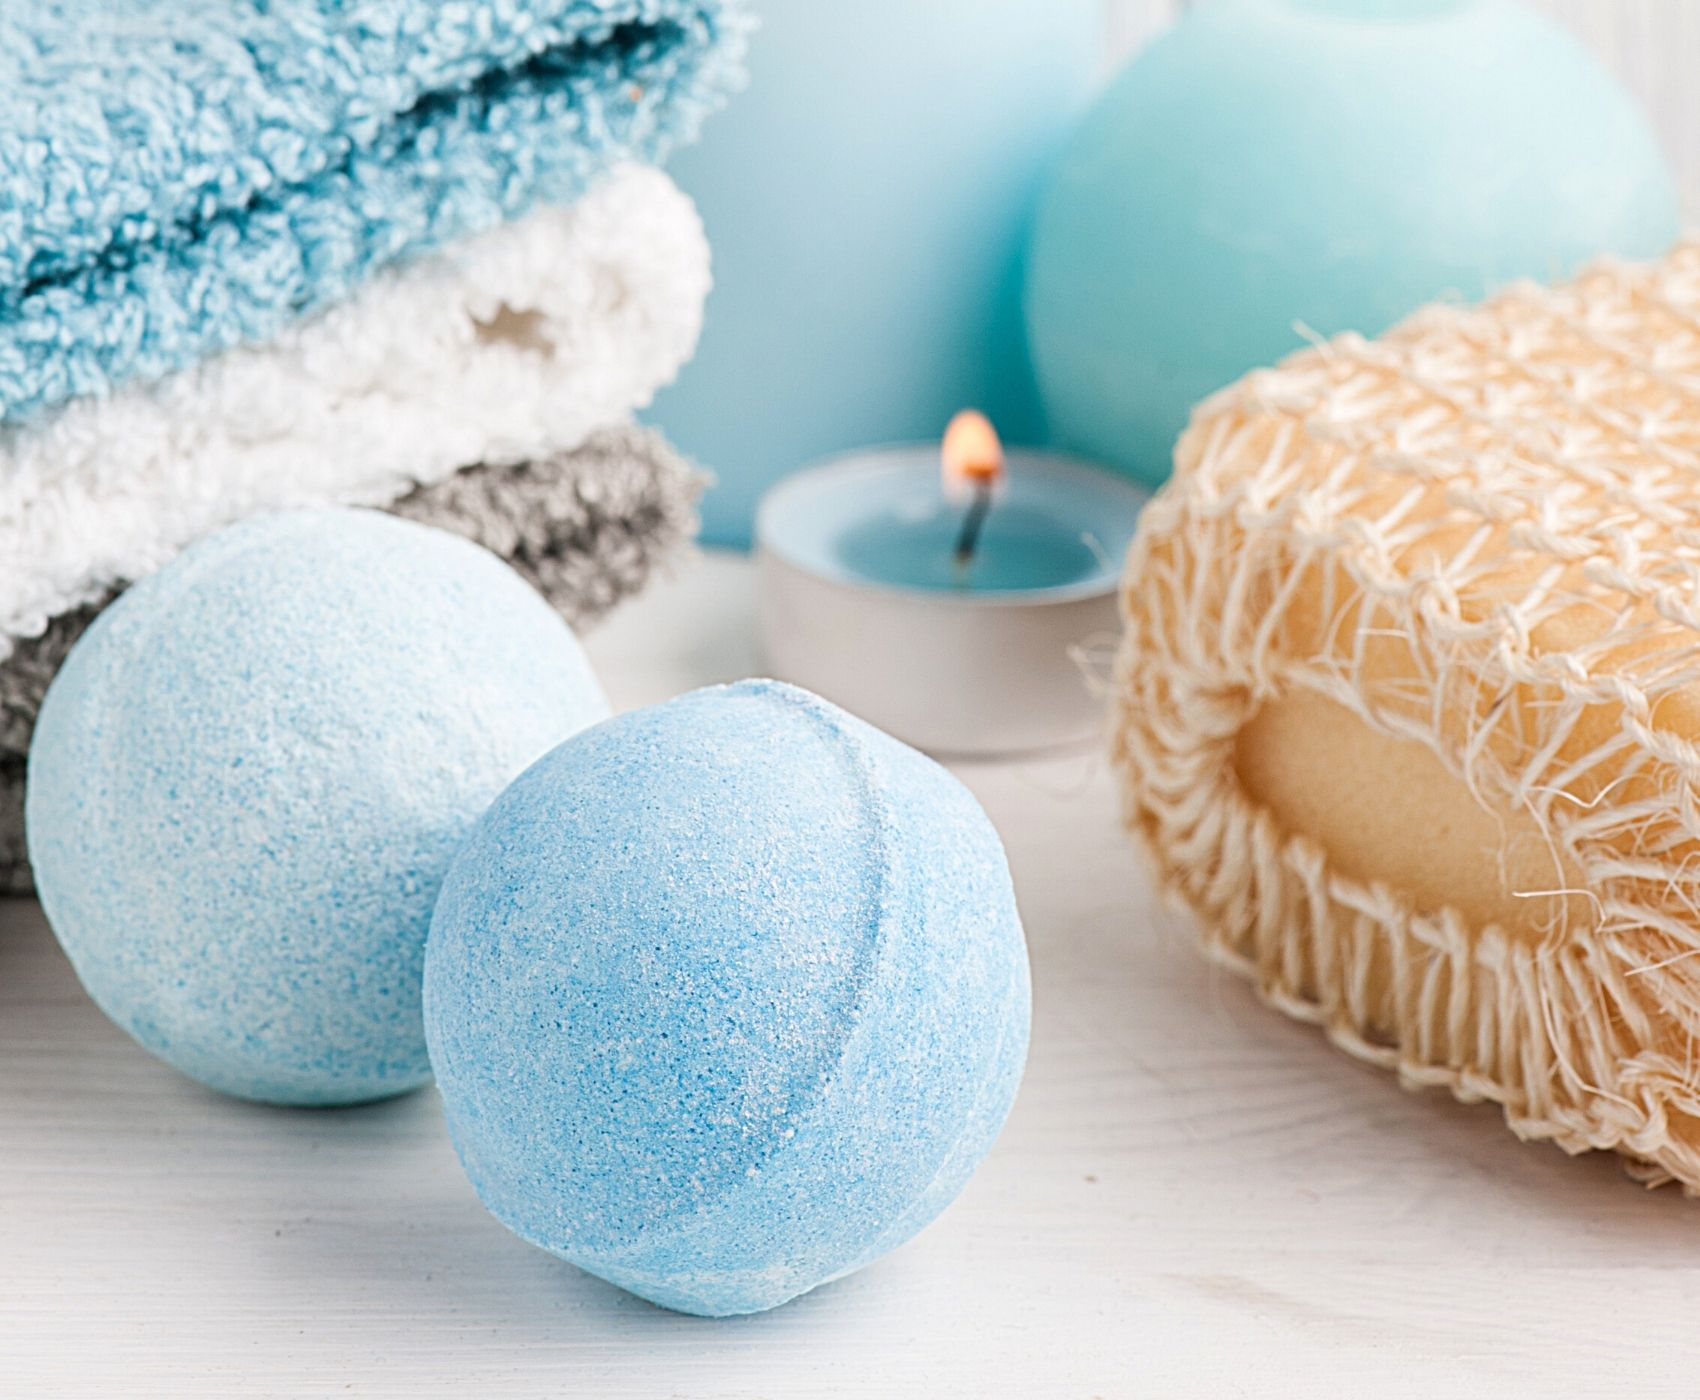 Easy Diy Bath Bomb Recipe With Video Suburban Simplicity